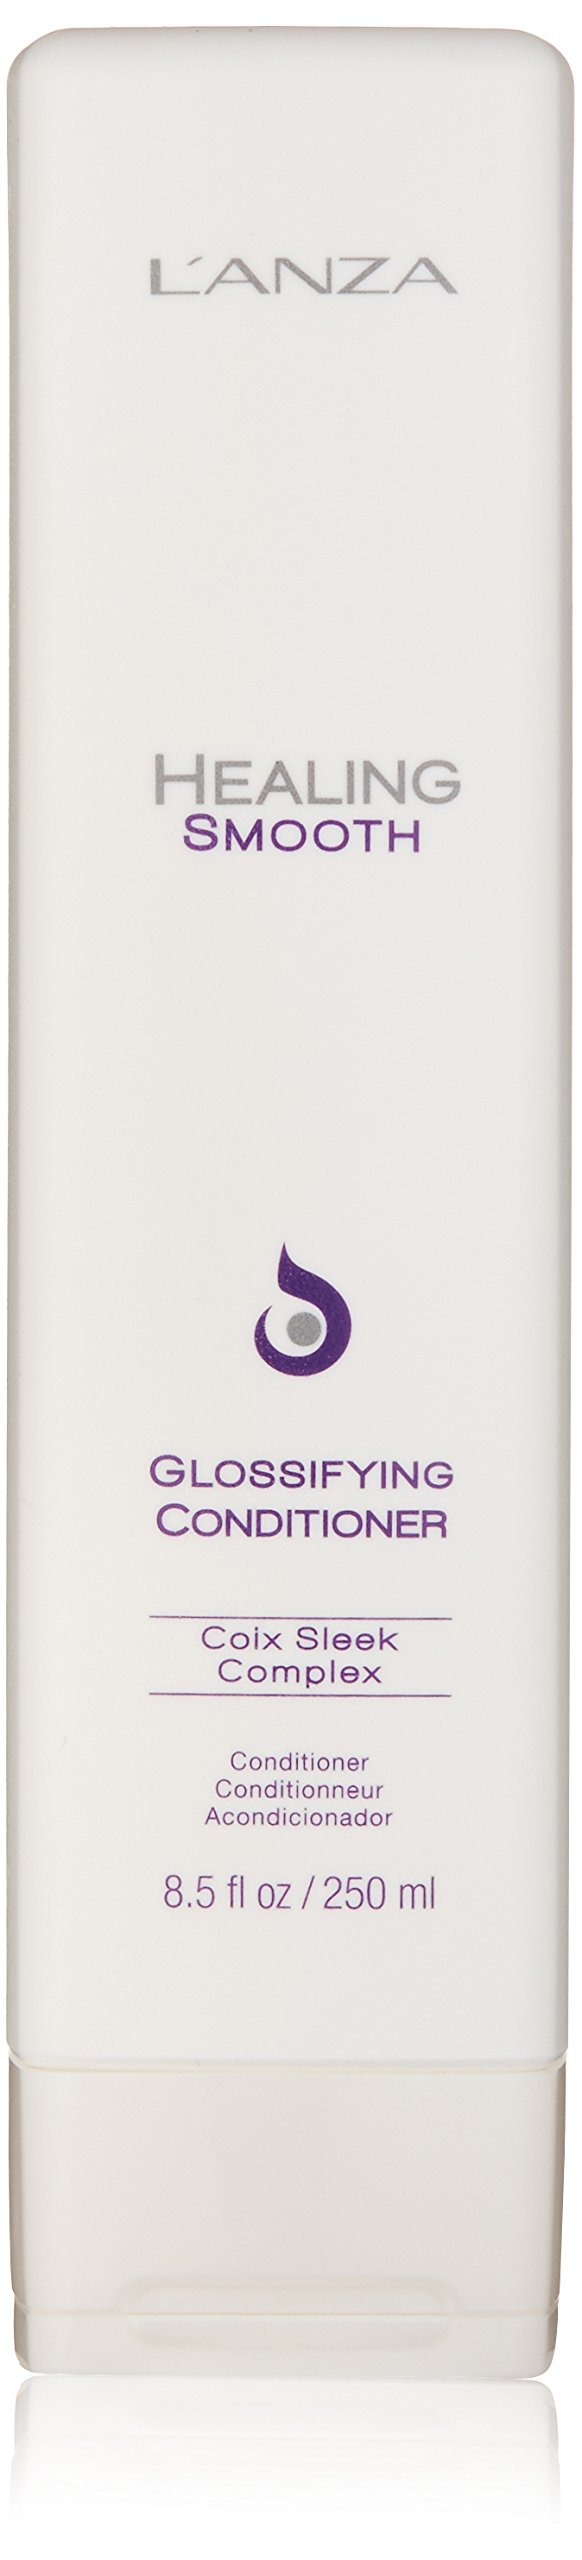 L'ANZA Healing Smooth Glossifying Conditioner, 8.5 oz. by L'ANZA